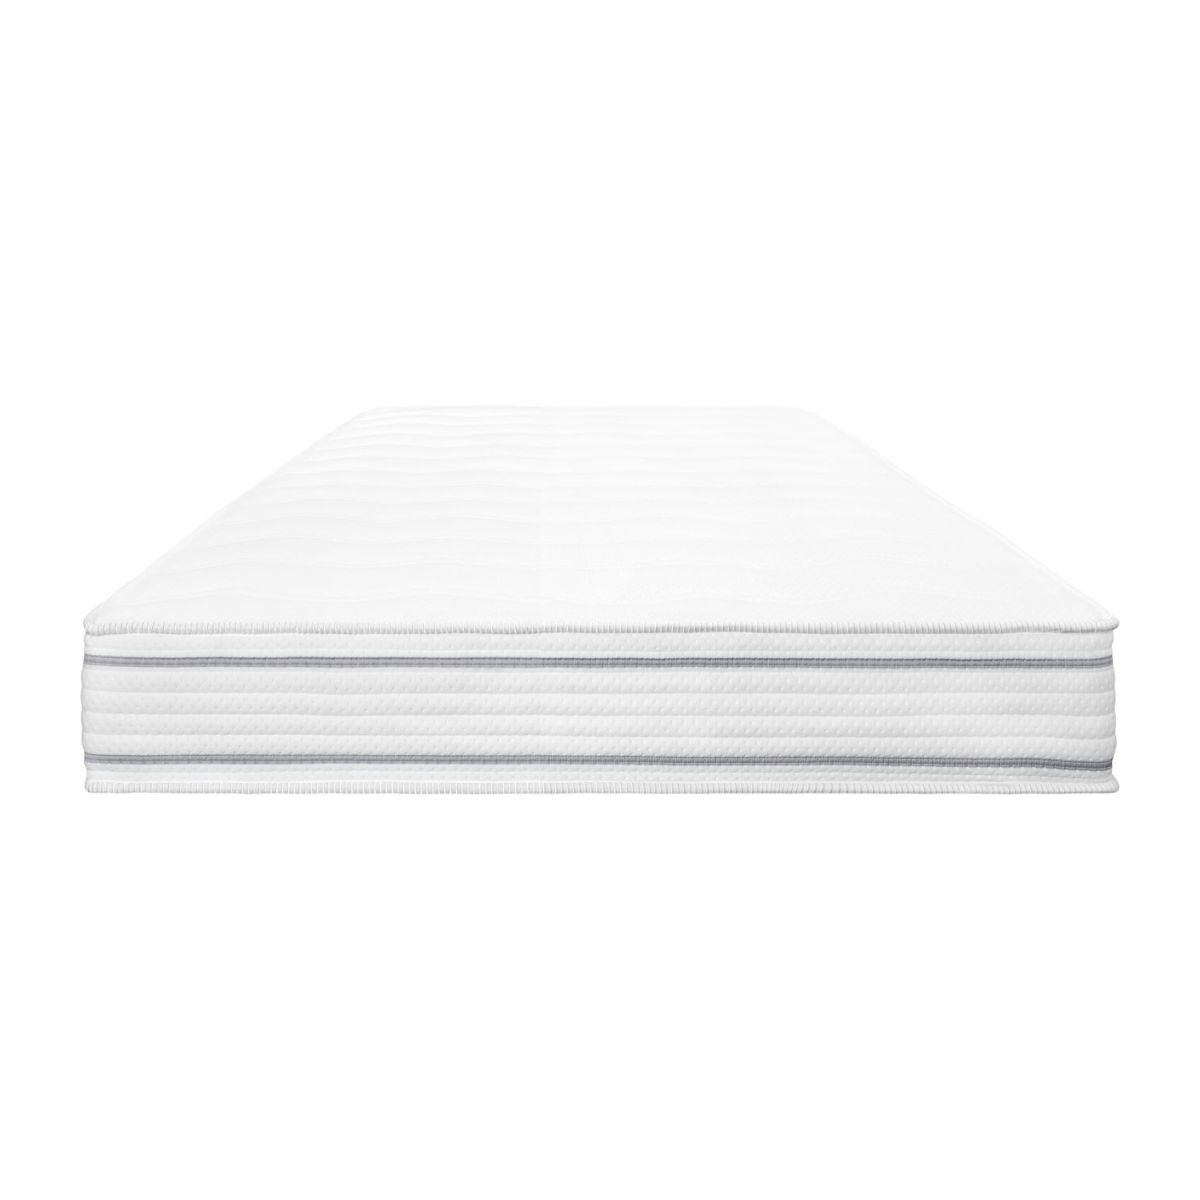 Spring mattress, width 21 cm, 80x200cm - firm support n°2